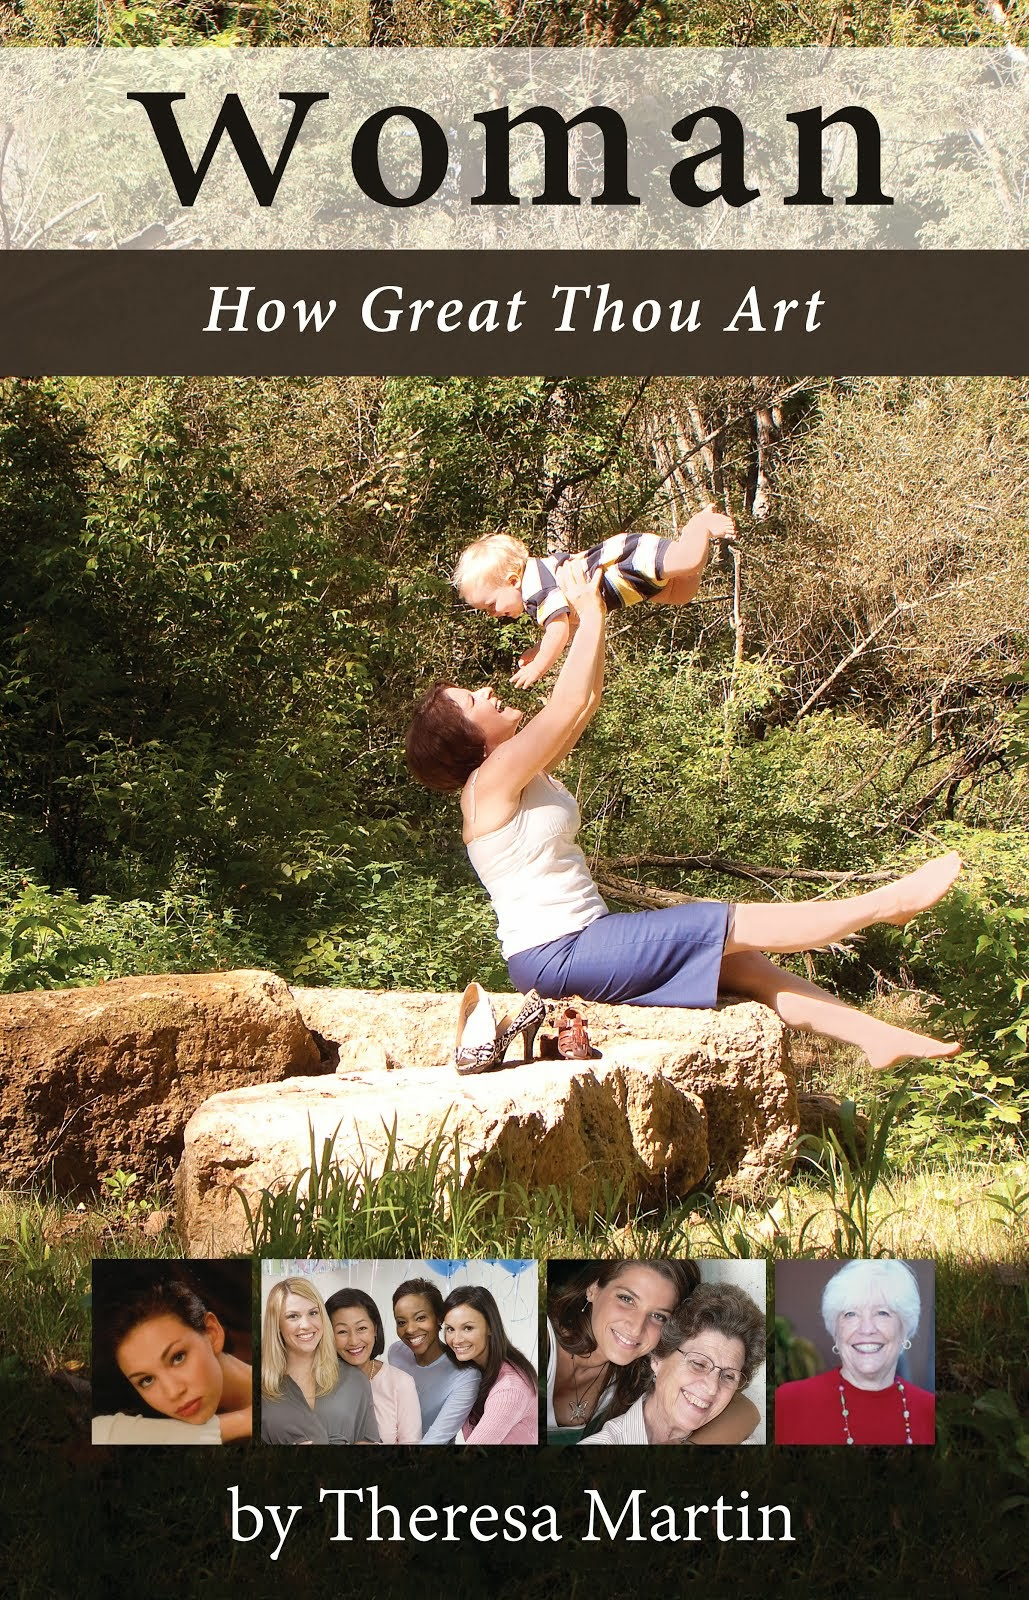 Woman, How Great Thou Art